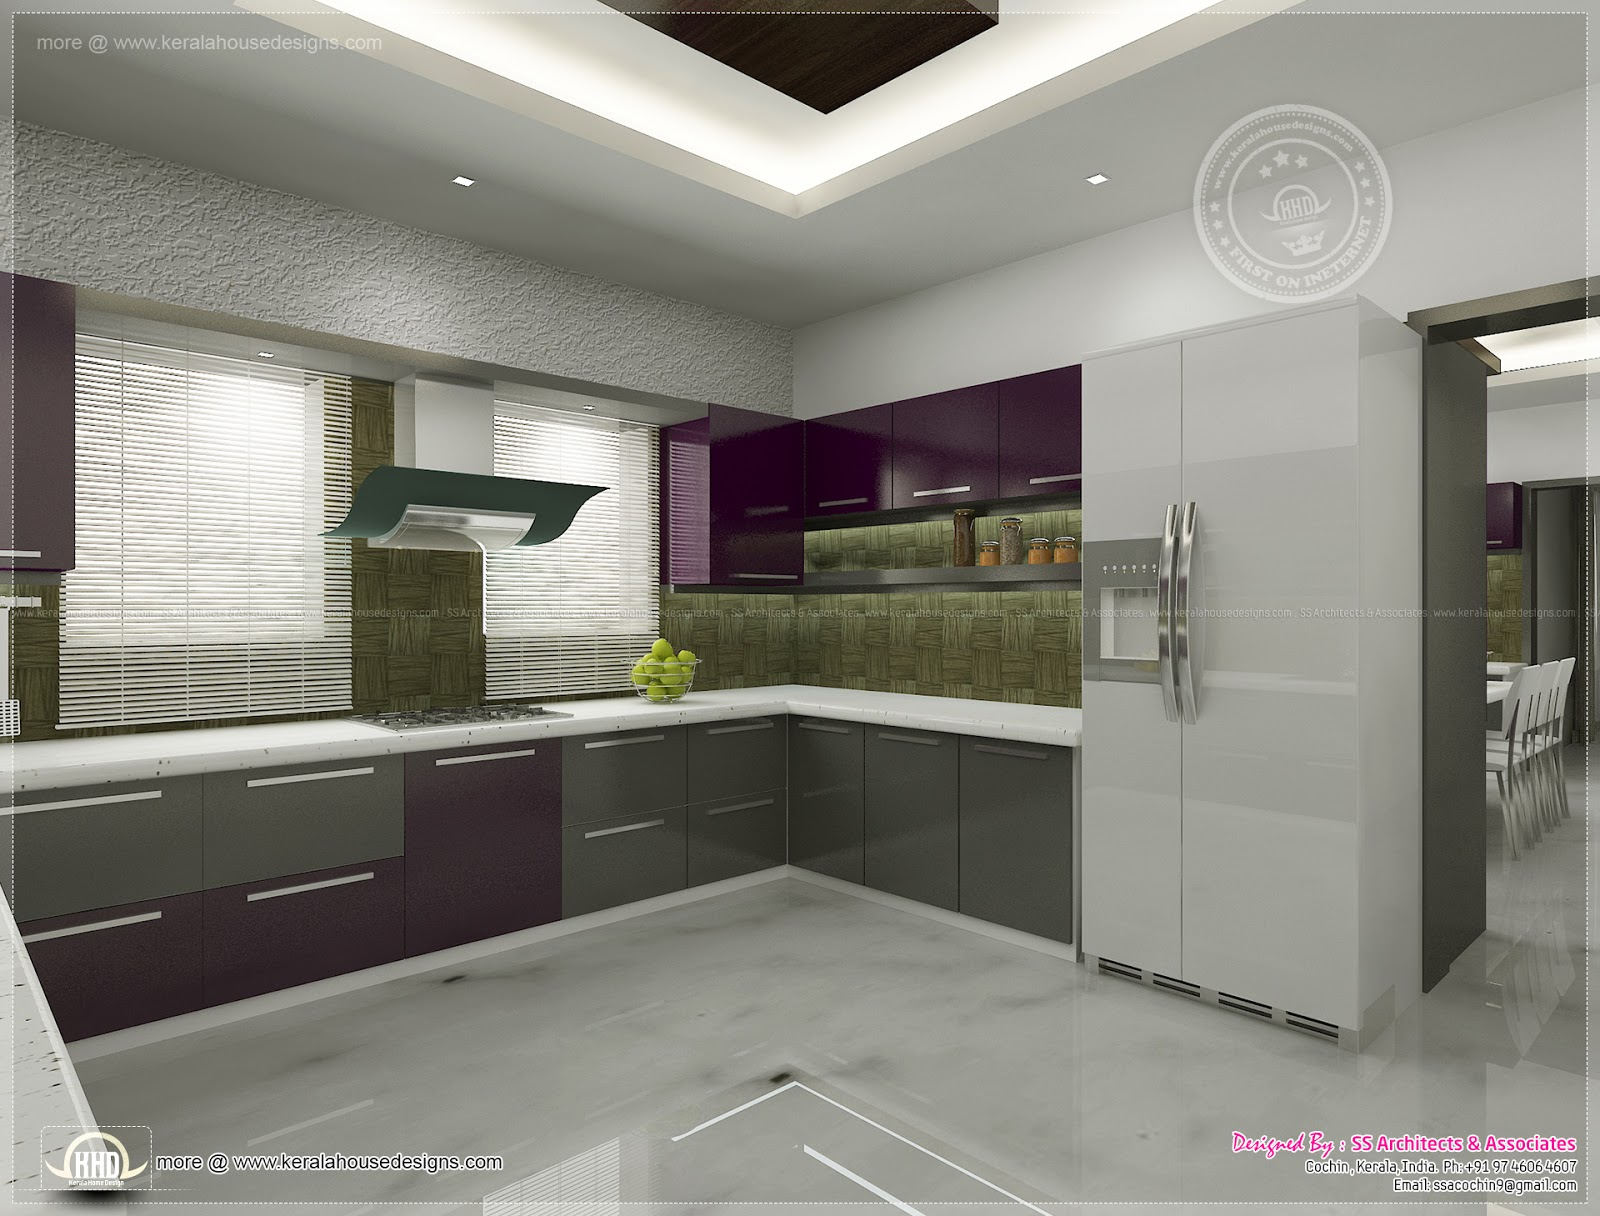 Kitchen interior views by ss architects cochin home for Interior design ideas for kitchen